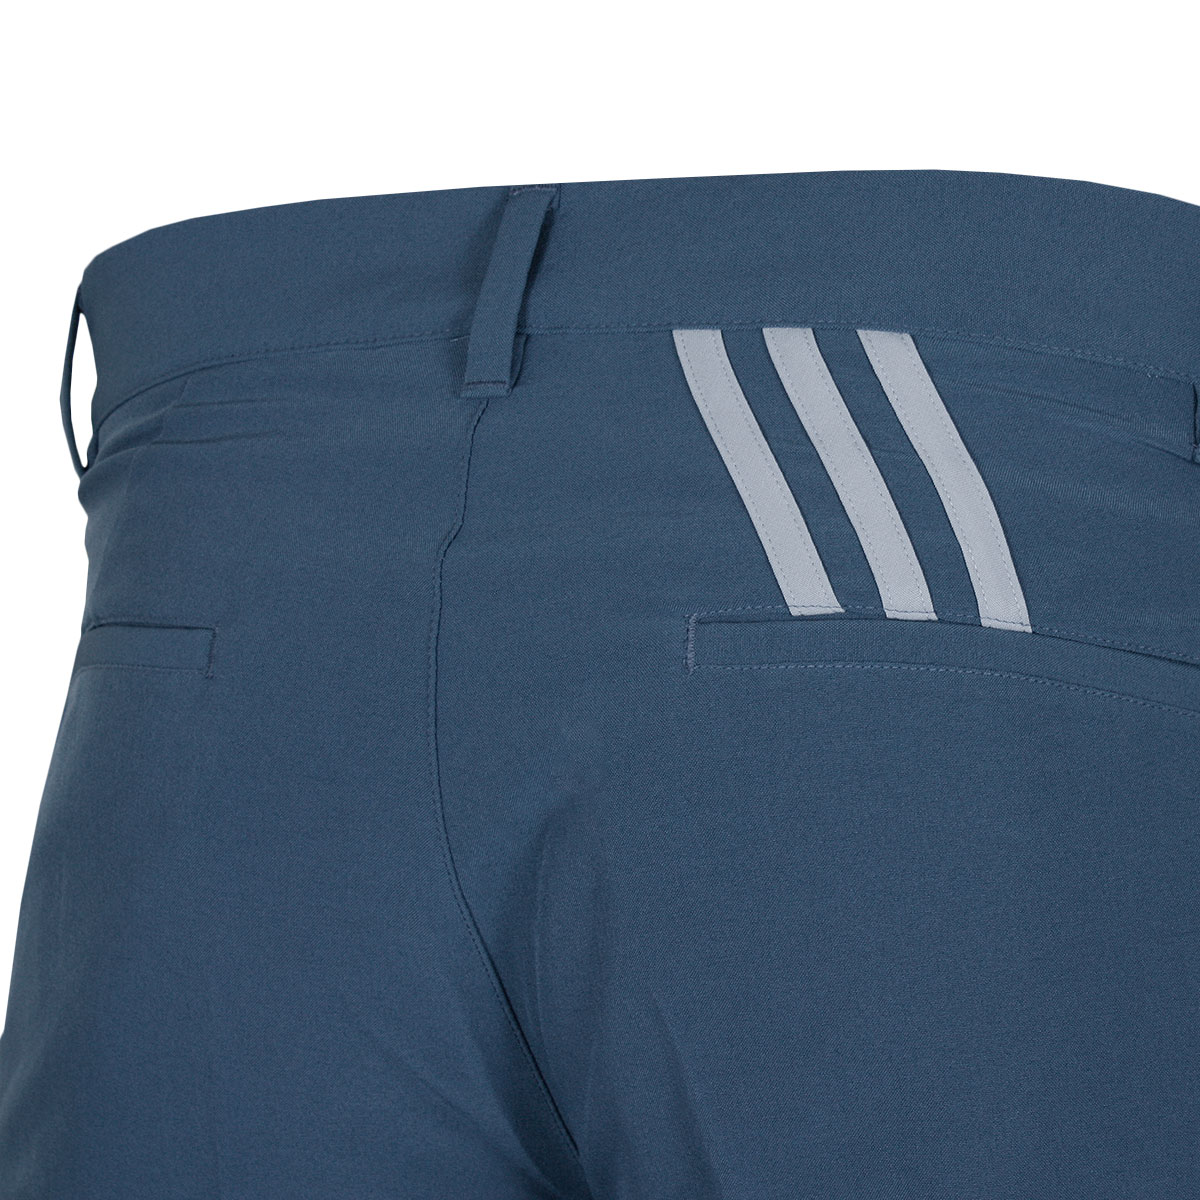 adidas-Golf-Mens-Ultimate-3-Stripes-Stretch-Pant-Trousers-44-OFF-RRP Indexbild 46